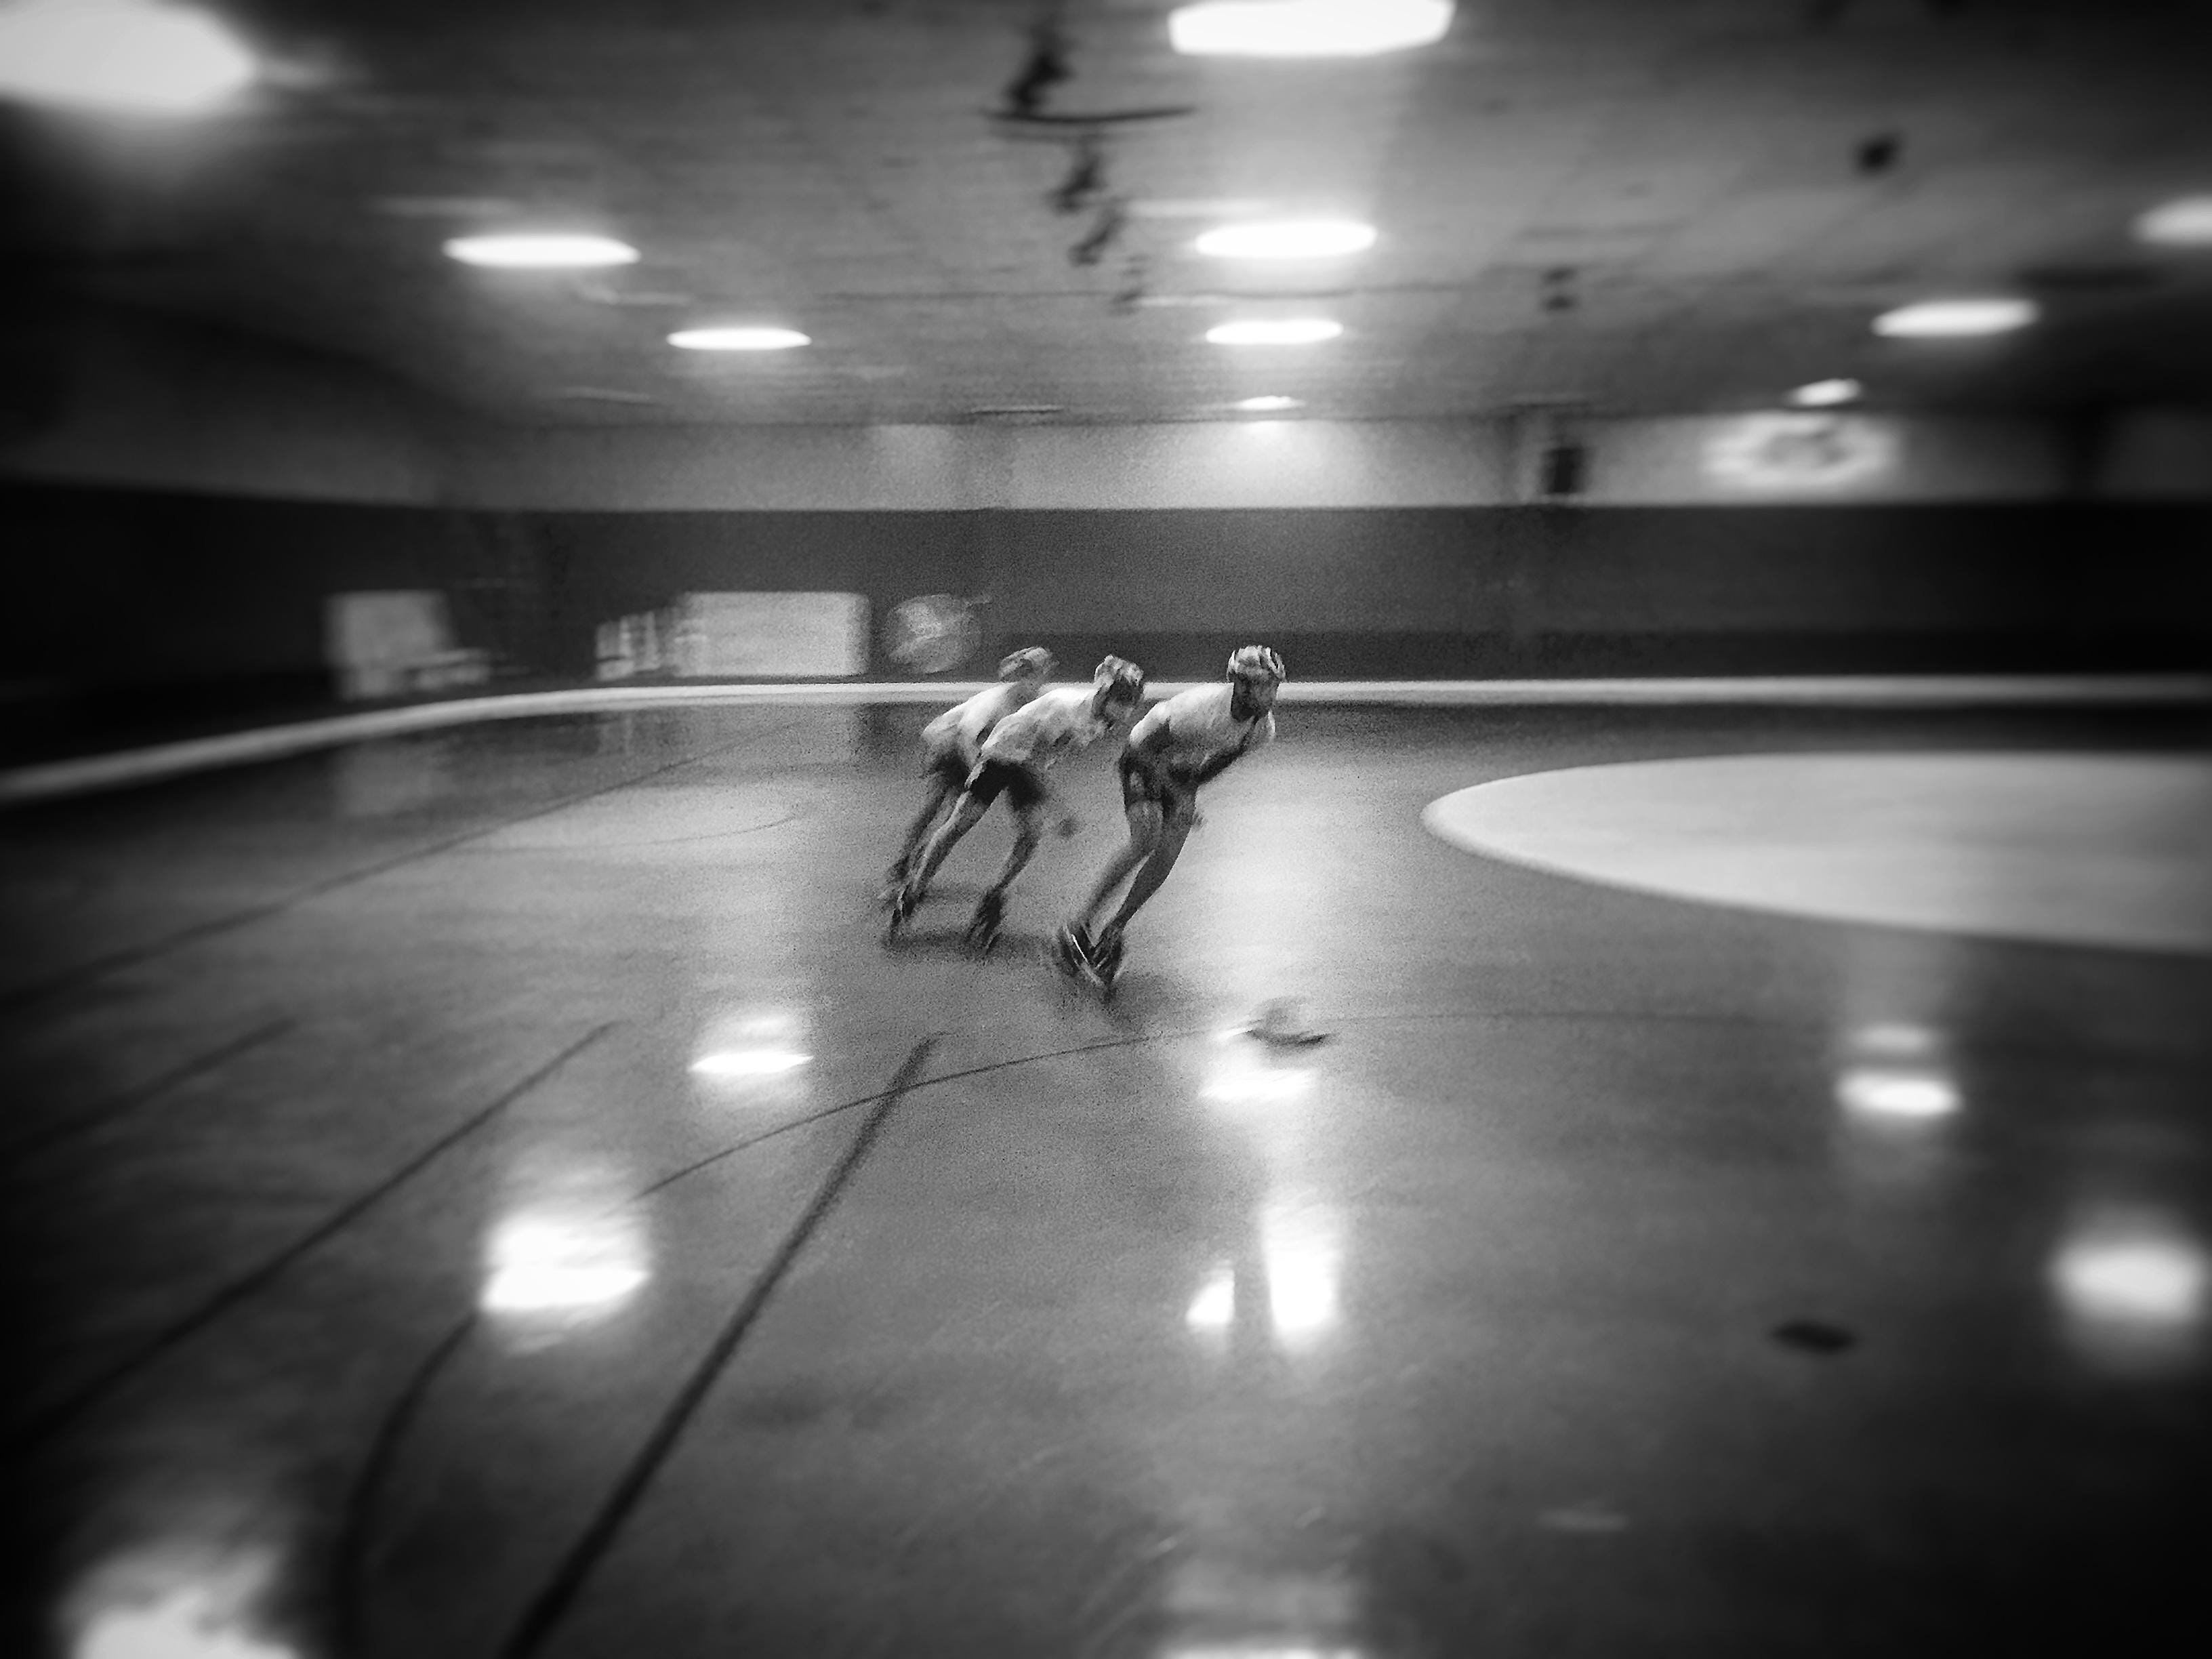 Southern Speed inline speed skating is sending 19 accomplished athletes to Indoor Nationals in Albuquerque, N.M. next week.